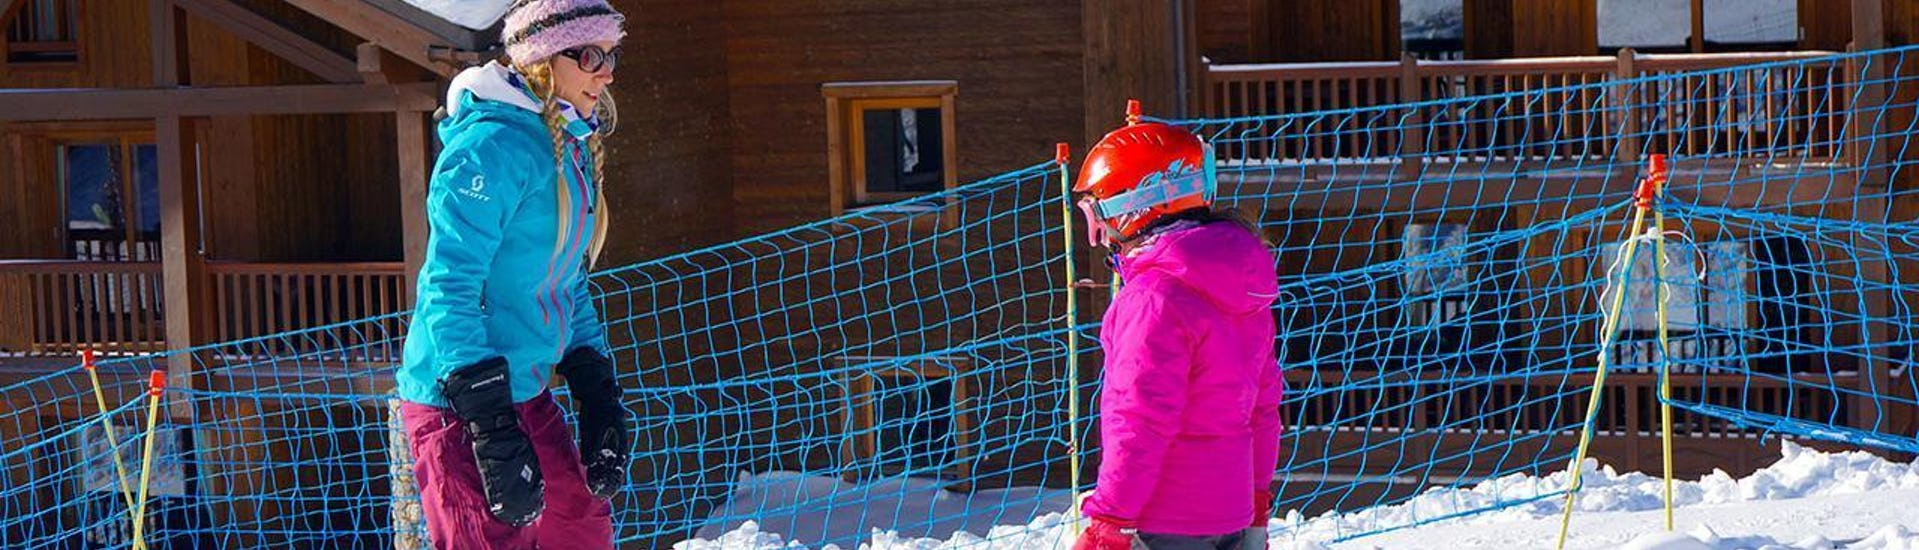 private-ski-lessons-for-kids-all-ages-tignes-snocool-hero